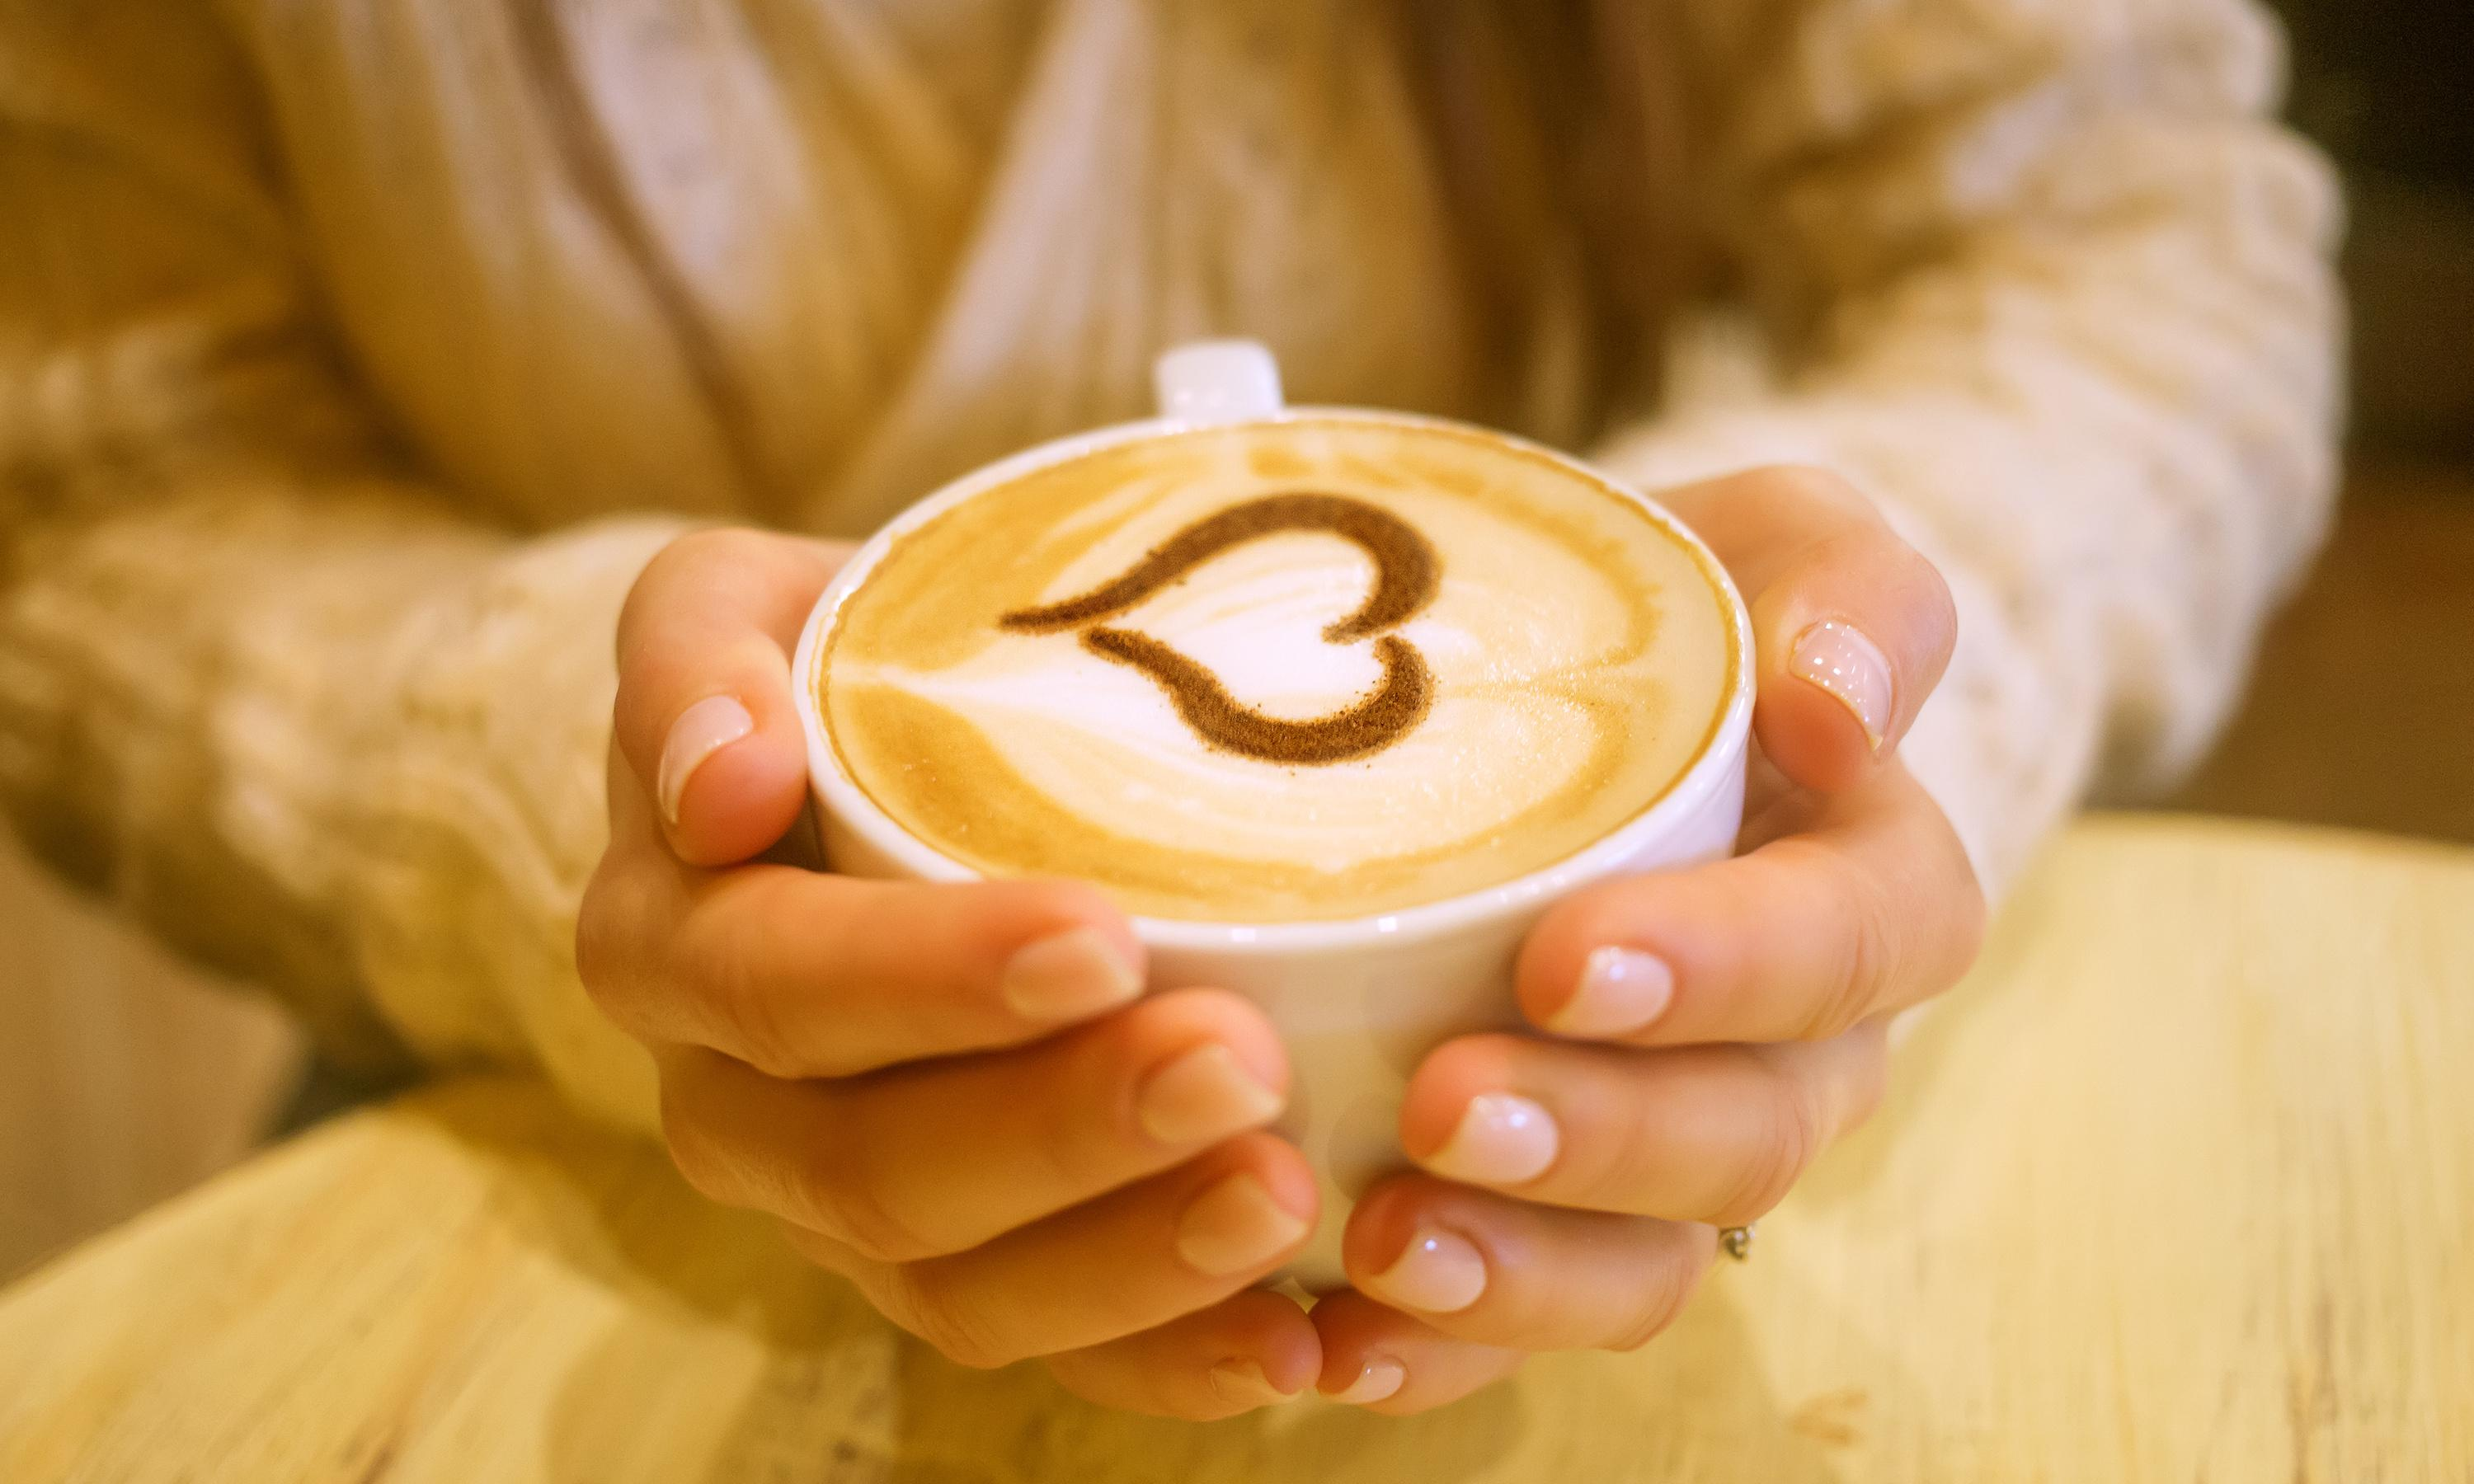 Is drinking coffee safe during your pregnancy? Get ready for some nuance